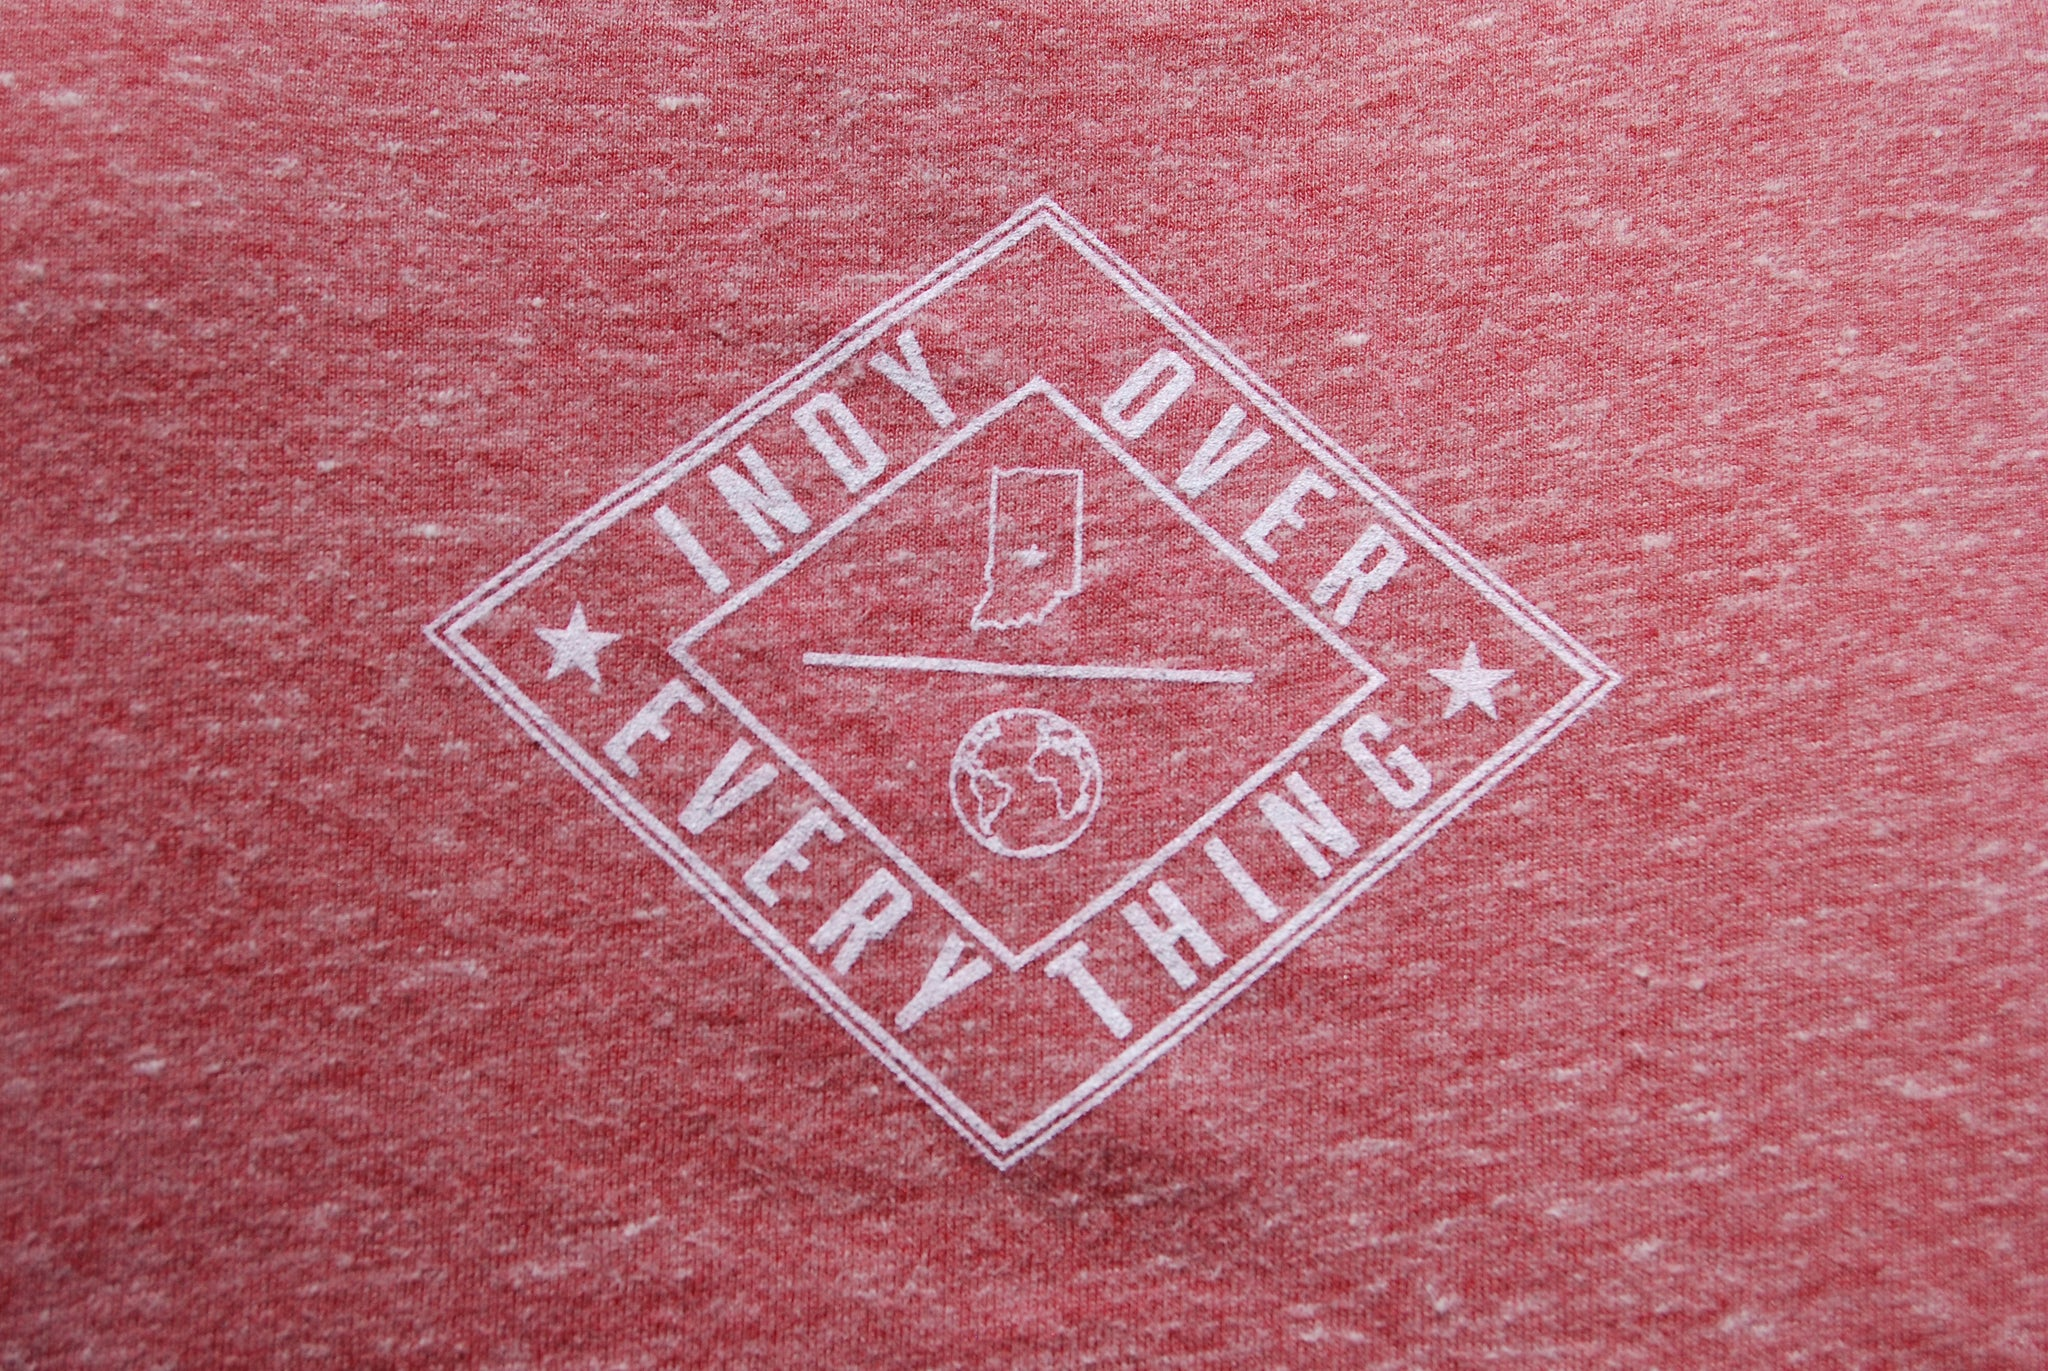 MENS LOGO TANK - HEATHER RED - Indy Over Everything